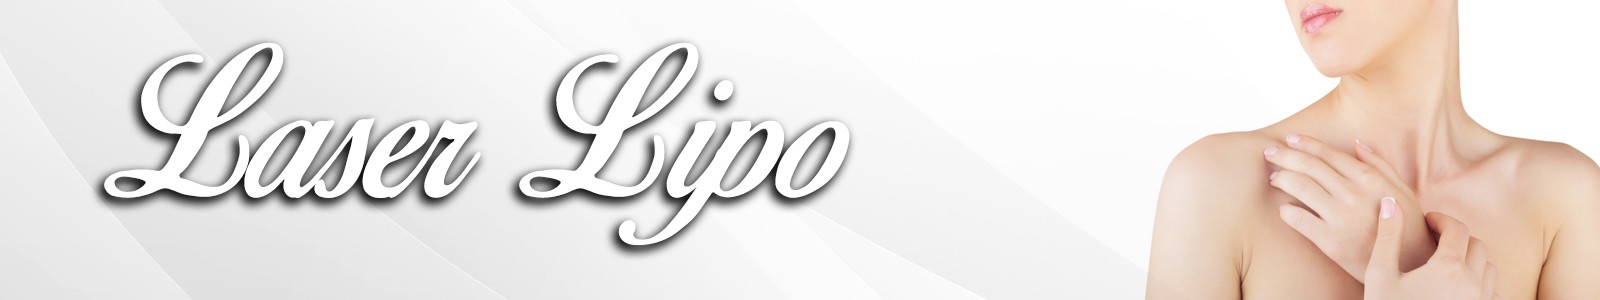 Laser Lipo Indianapolis Wellness Origin